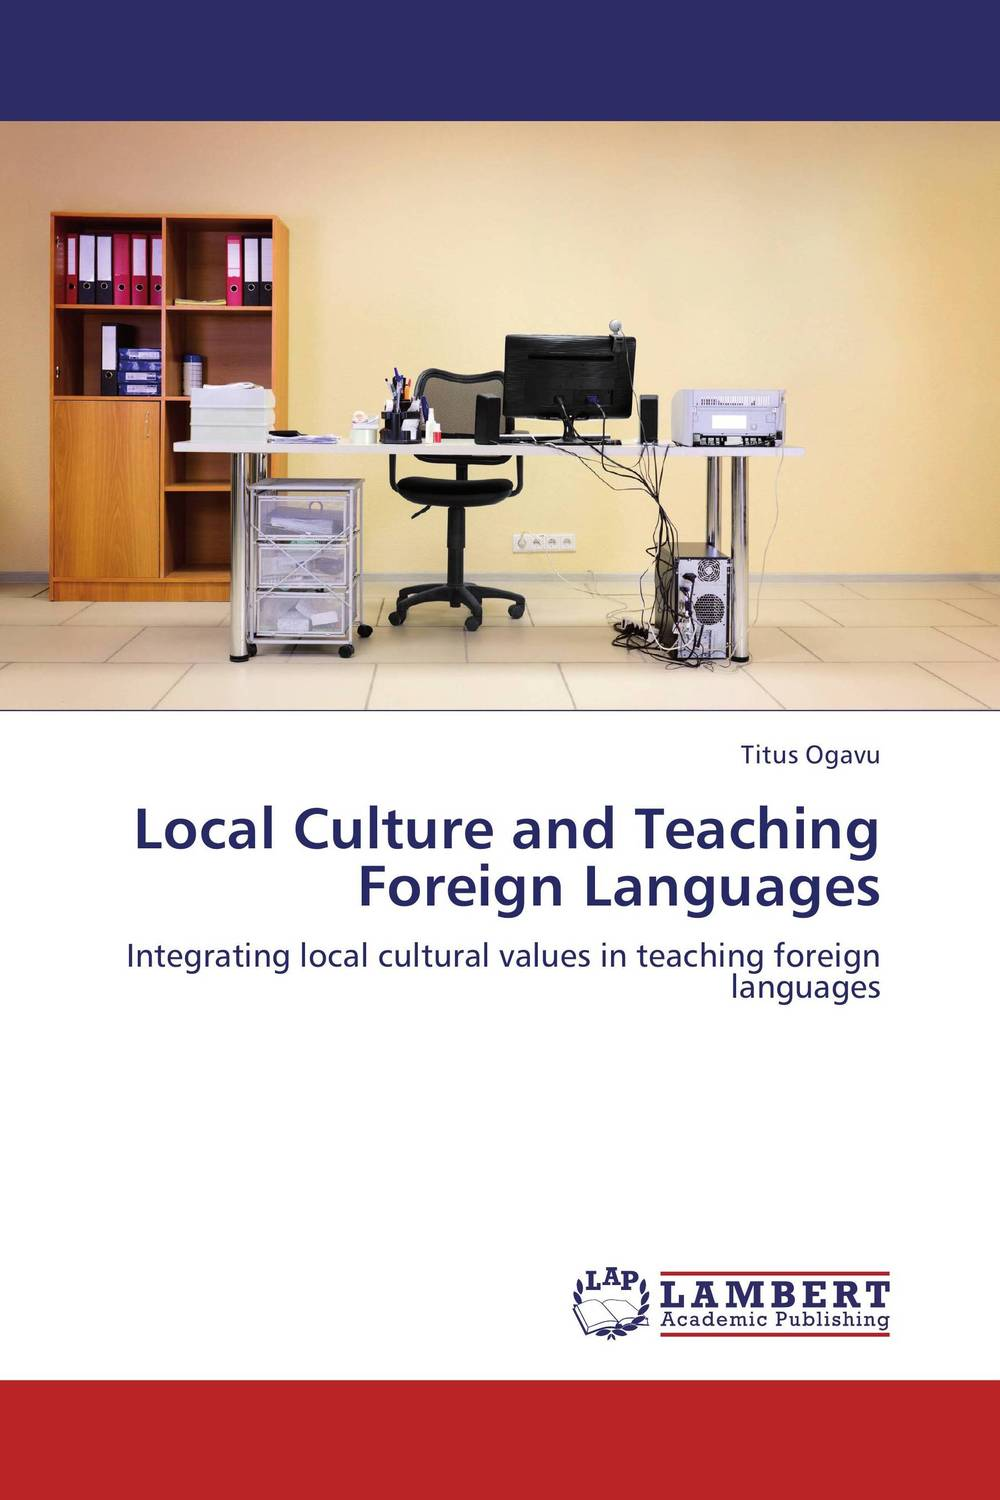 Local Culture and  Teaching Foreign Languages сысоев п сысоева л issues in us culture and society амер культура и общество